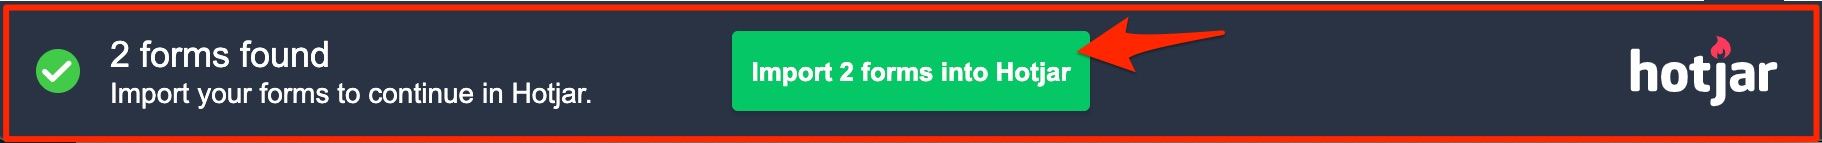 Screenshot of the Form Finder banner on your targeted page.